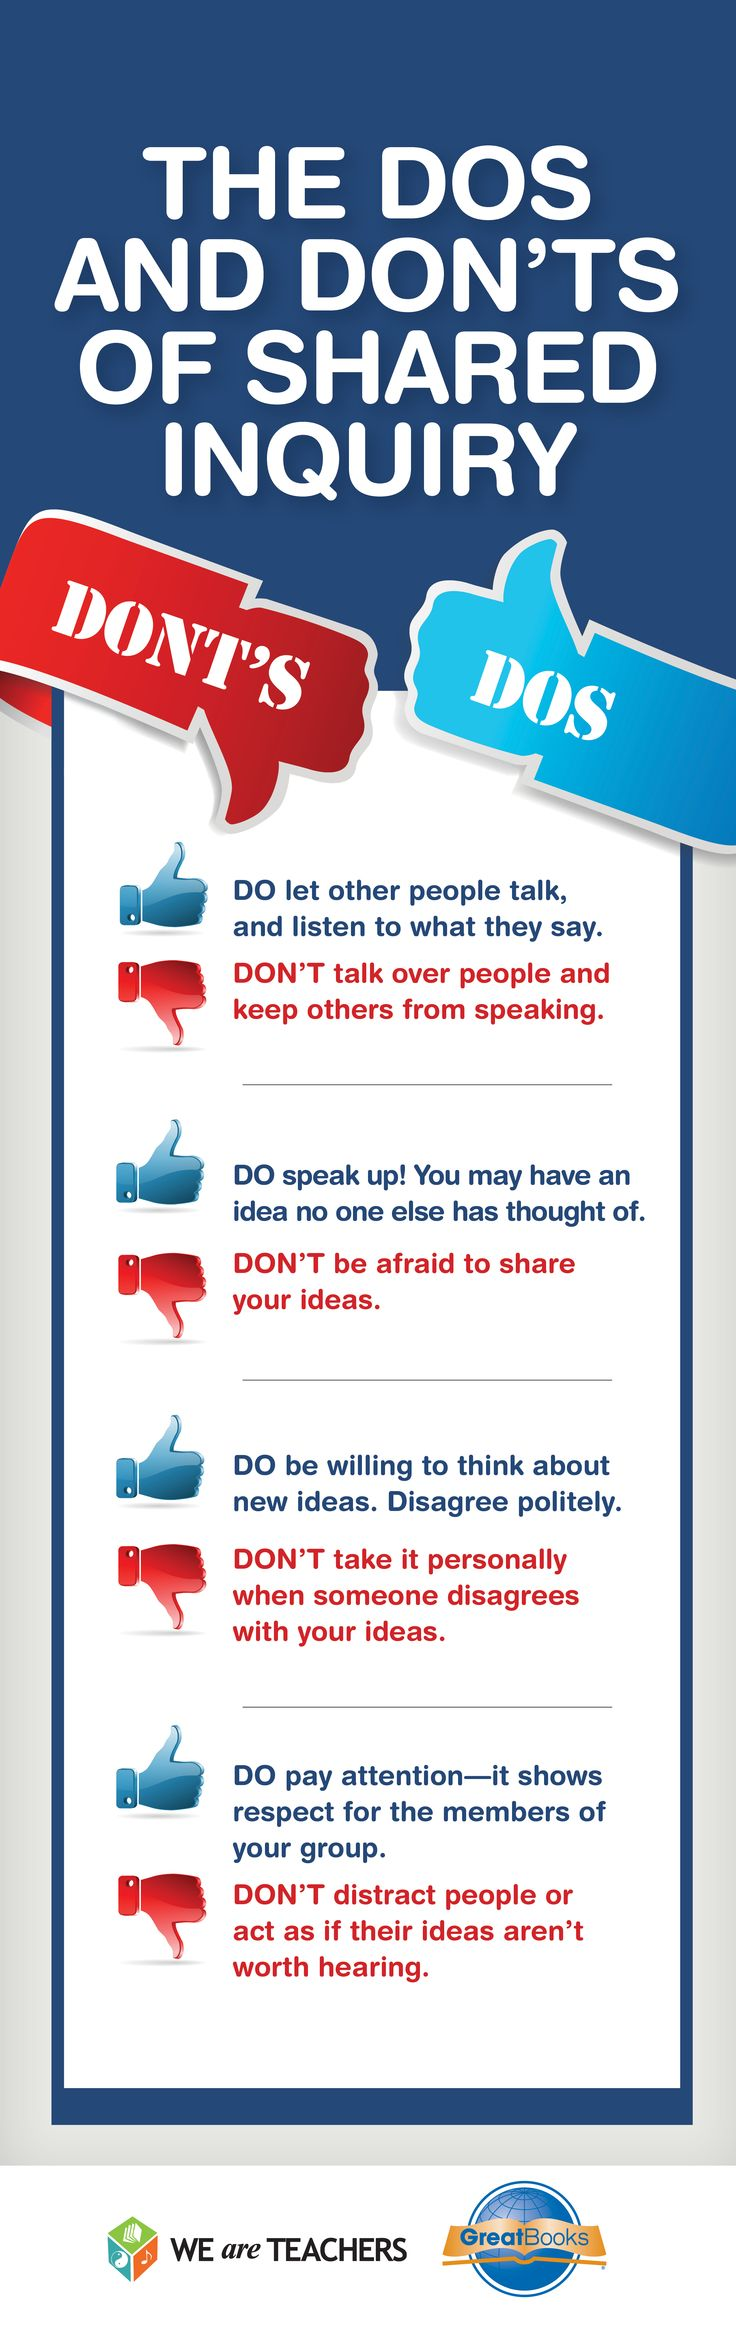 The Dos and Don'ts of Shared Inquiry. Click to learn more about the Shared Inquiry method.